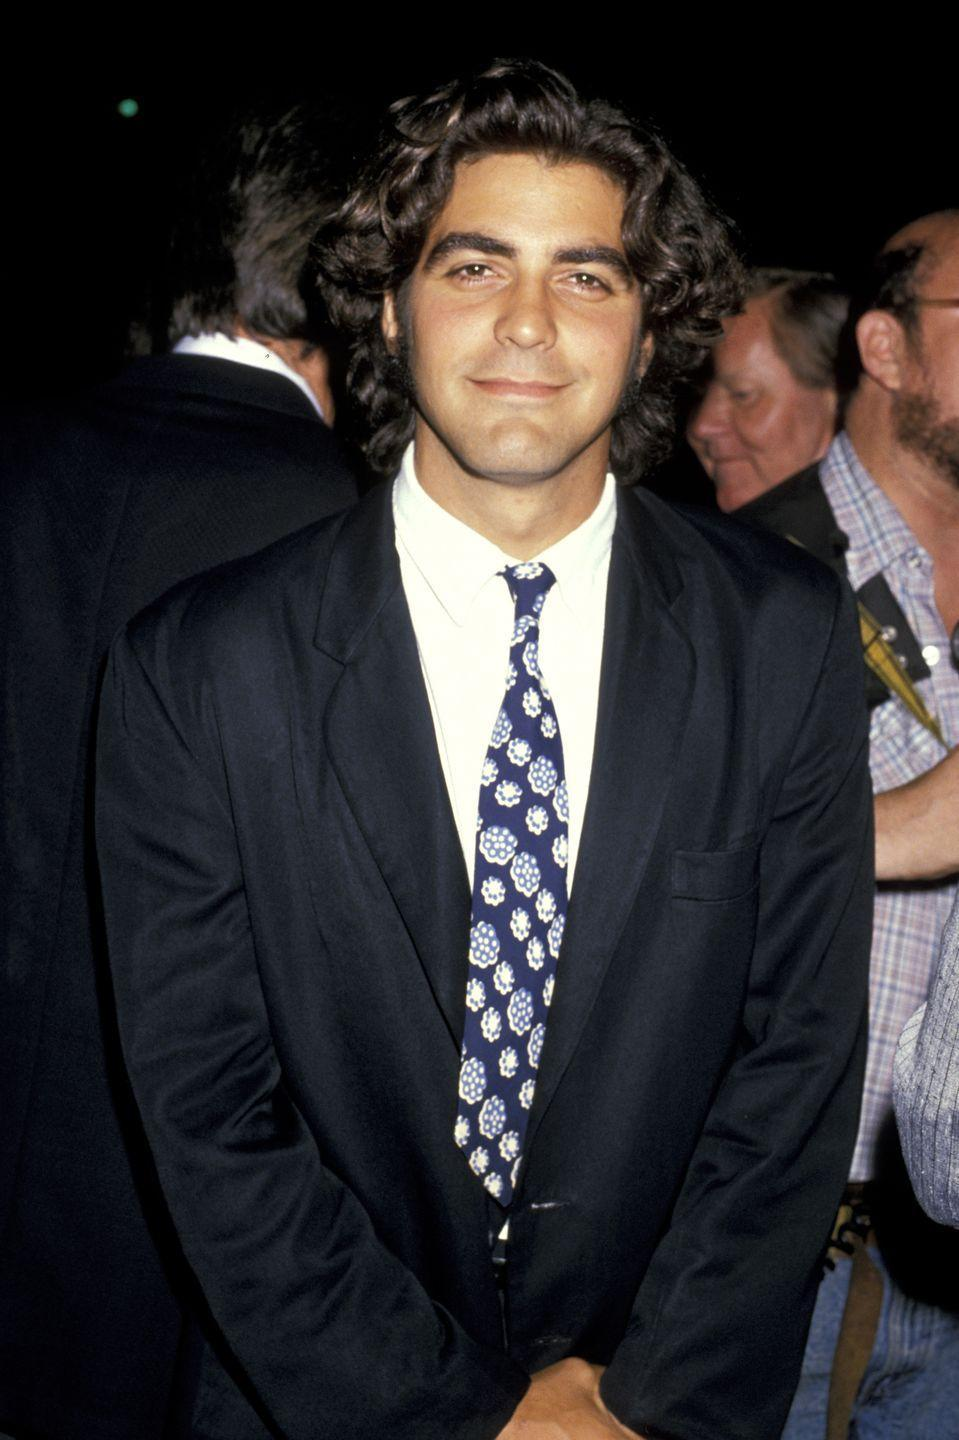 <p>George Clooney in the '80s was all hair. You may be less familiar with this version of the actor, but before <em>ER, </em><em>Ocean's Eleven, </em>and <em>Gravity</em>, he rocked dark brown curls. </p>